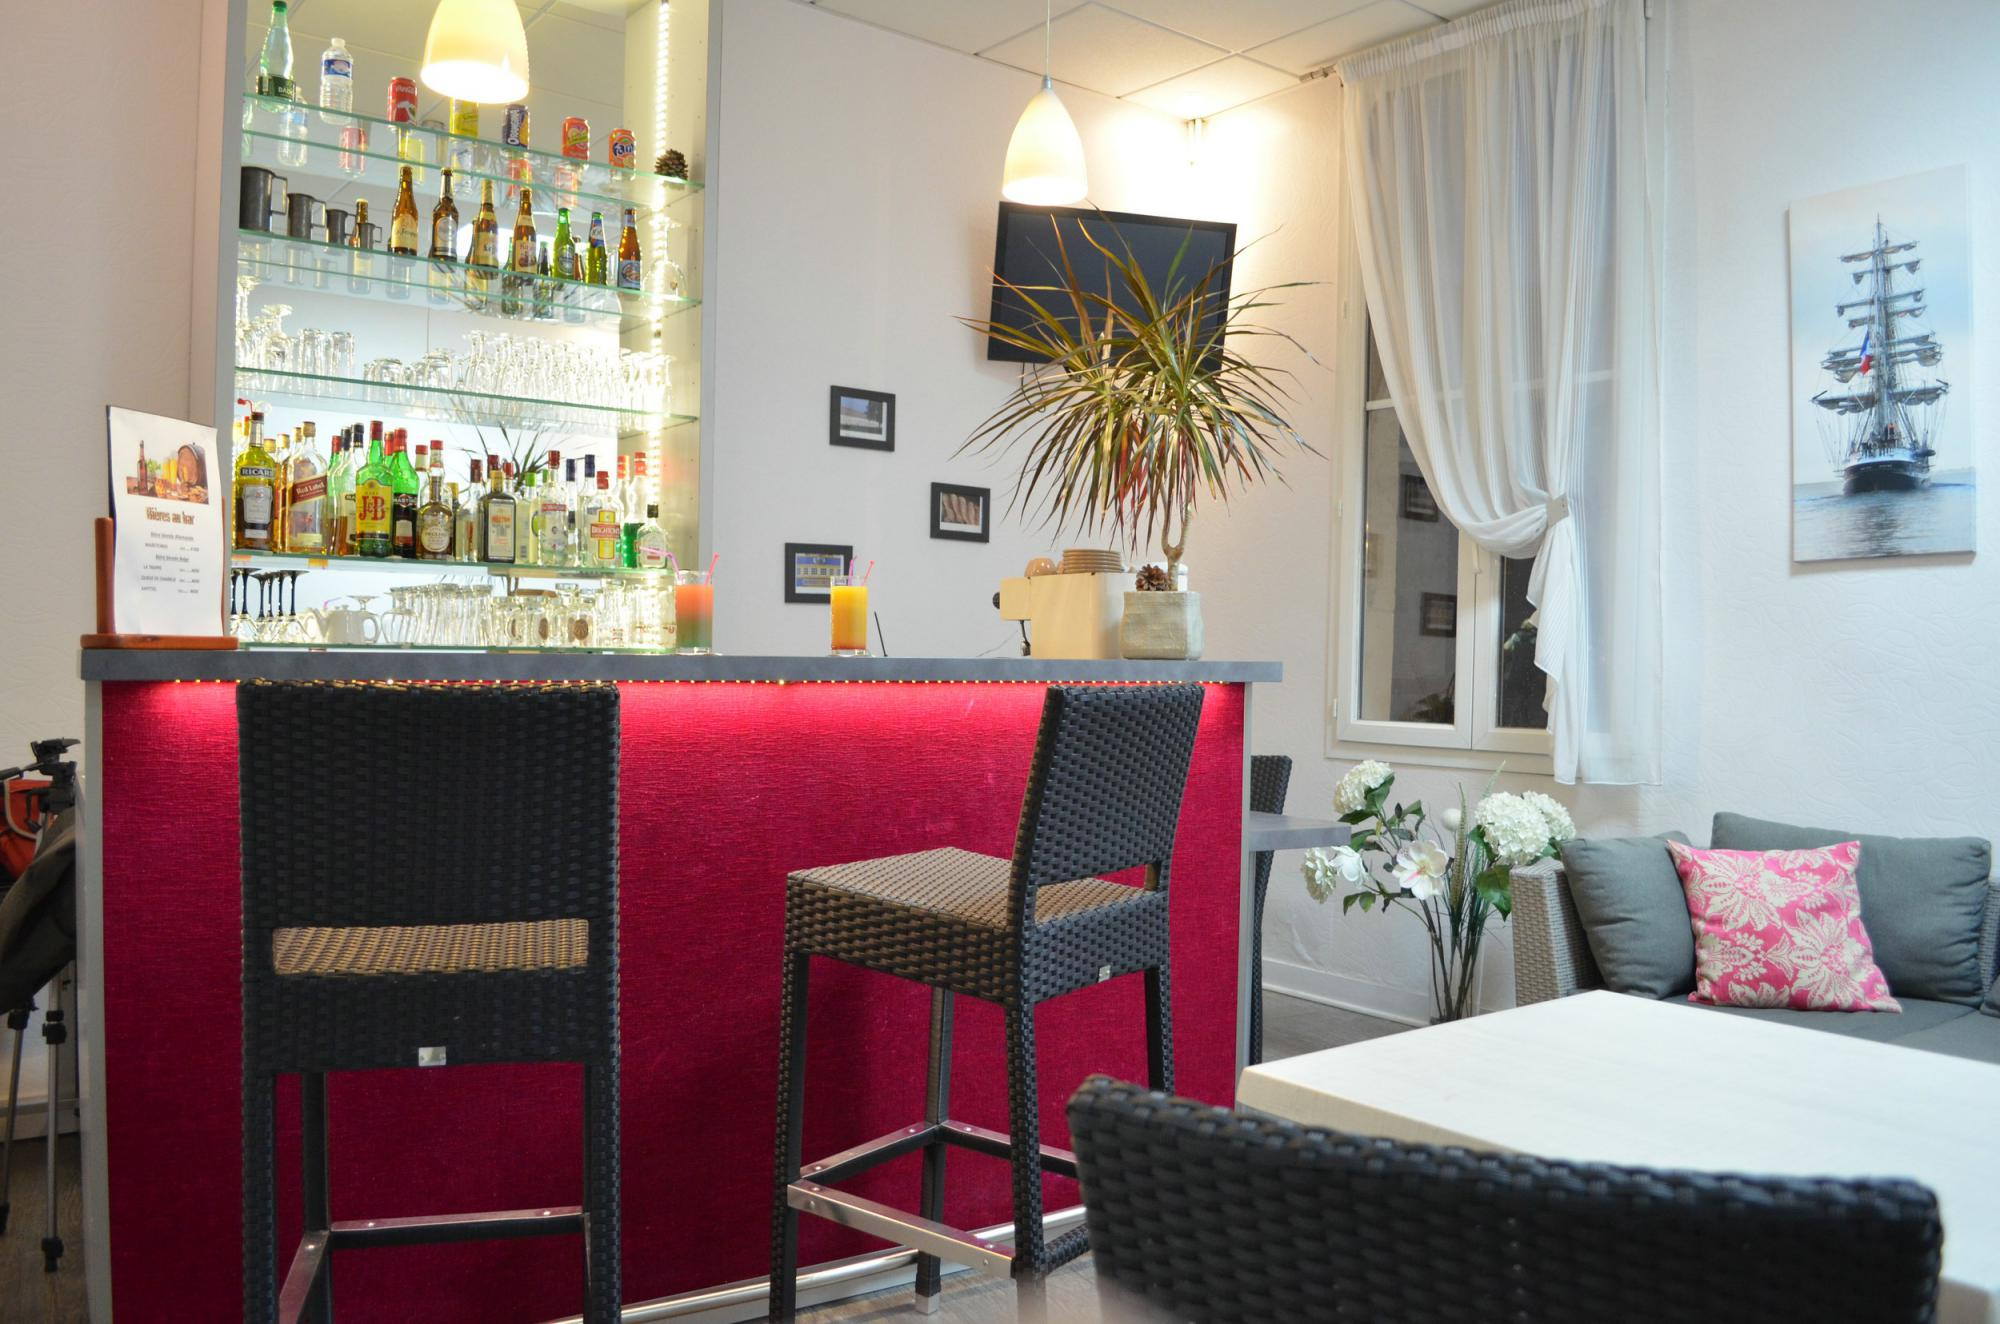 The hotel de France's bar in Rochefort in Charente Maritime : Hot drinks, refreshments, cocktails, beers ...